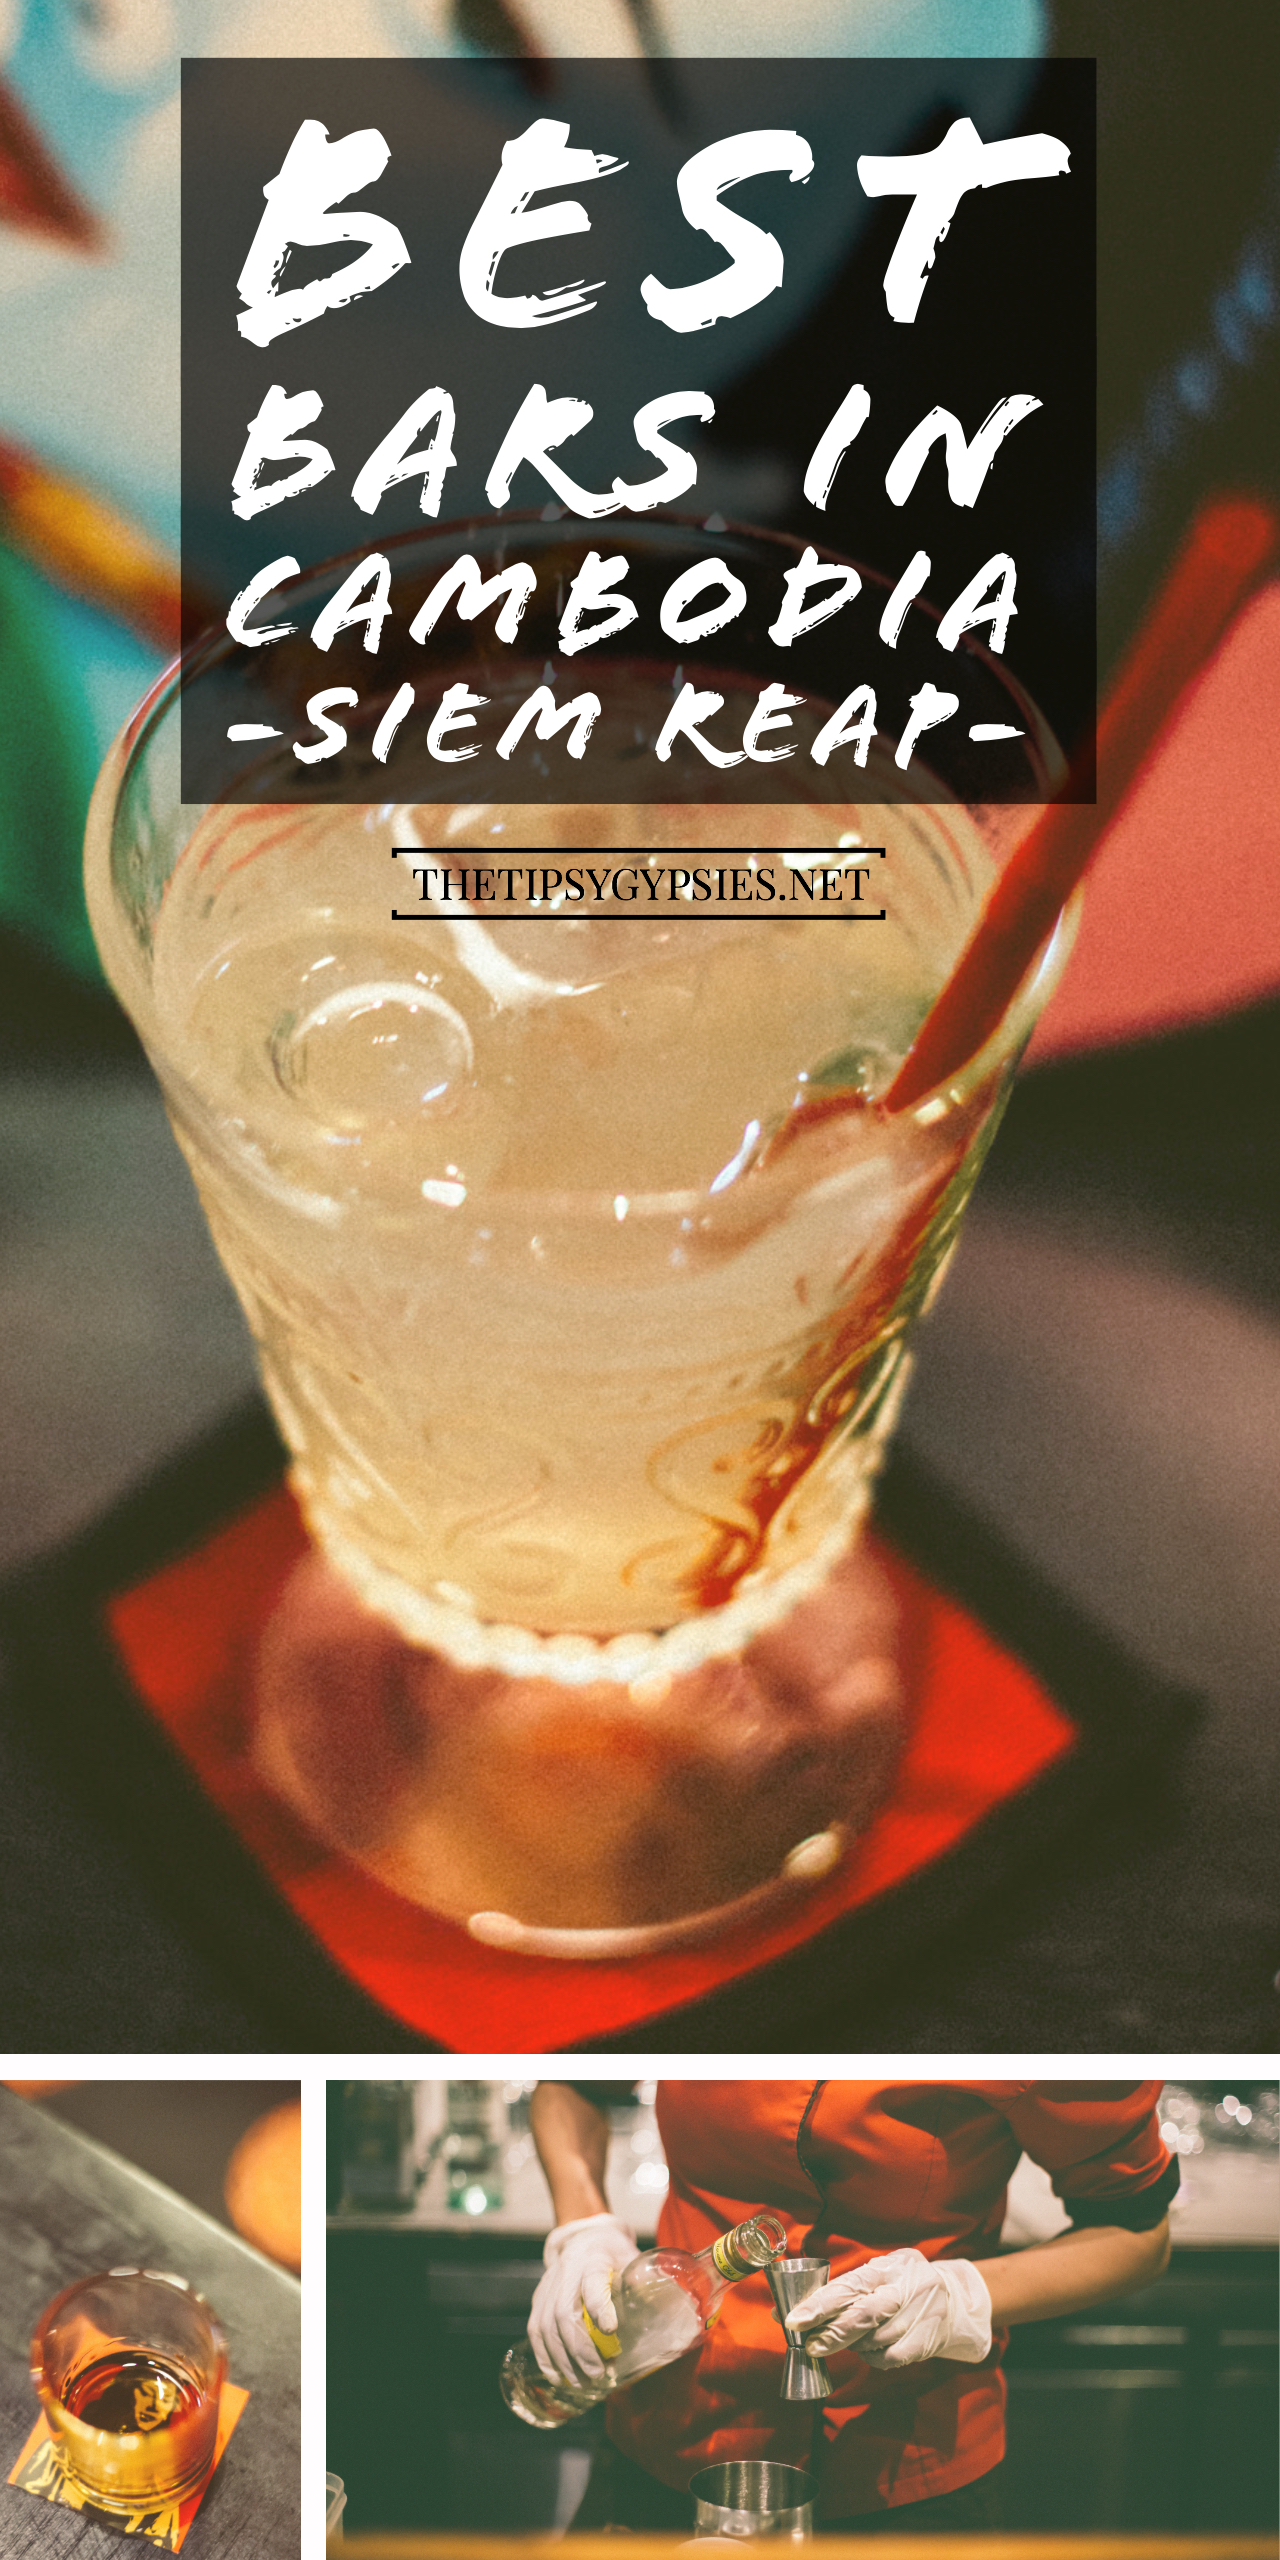 Best Bars in Cambodia Siem Reap